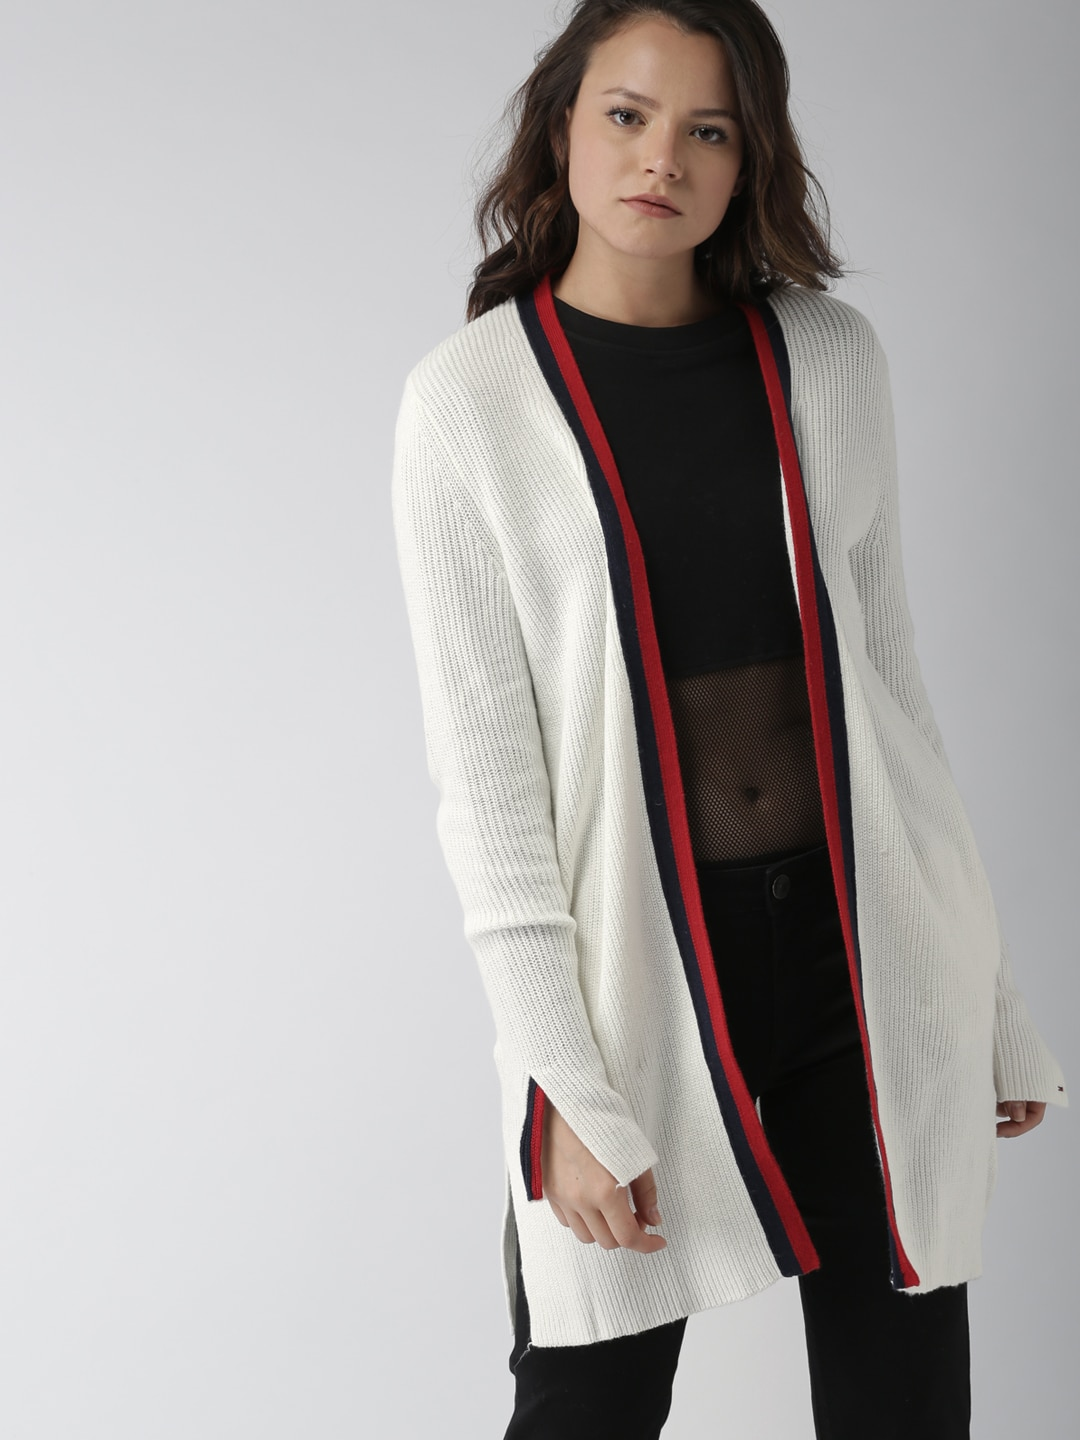 cde2a7cd2a Tommy Hilfiger Button Sweaters - Buy Tommy Hilfiger Button Sweaters online  in India